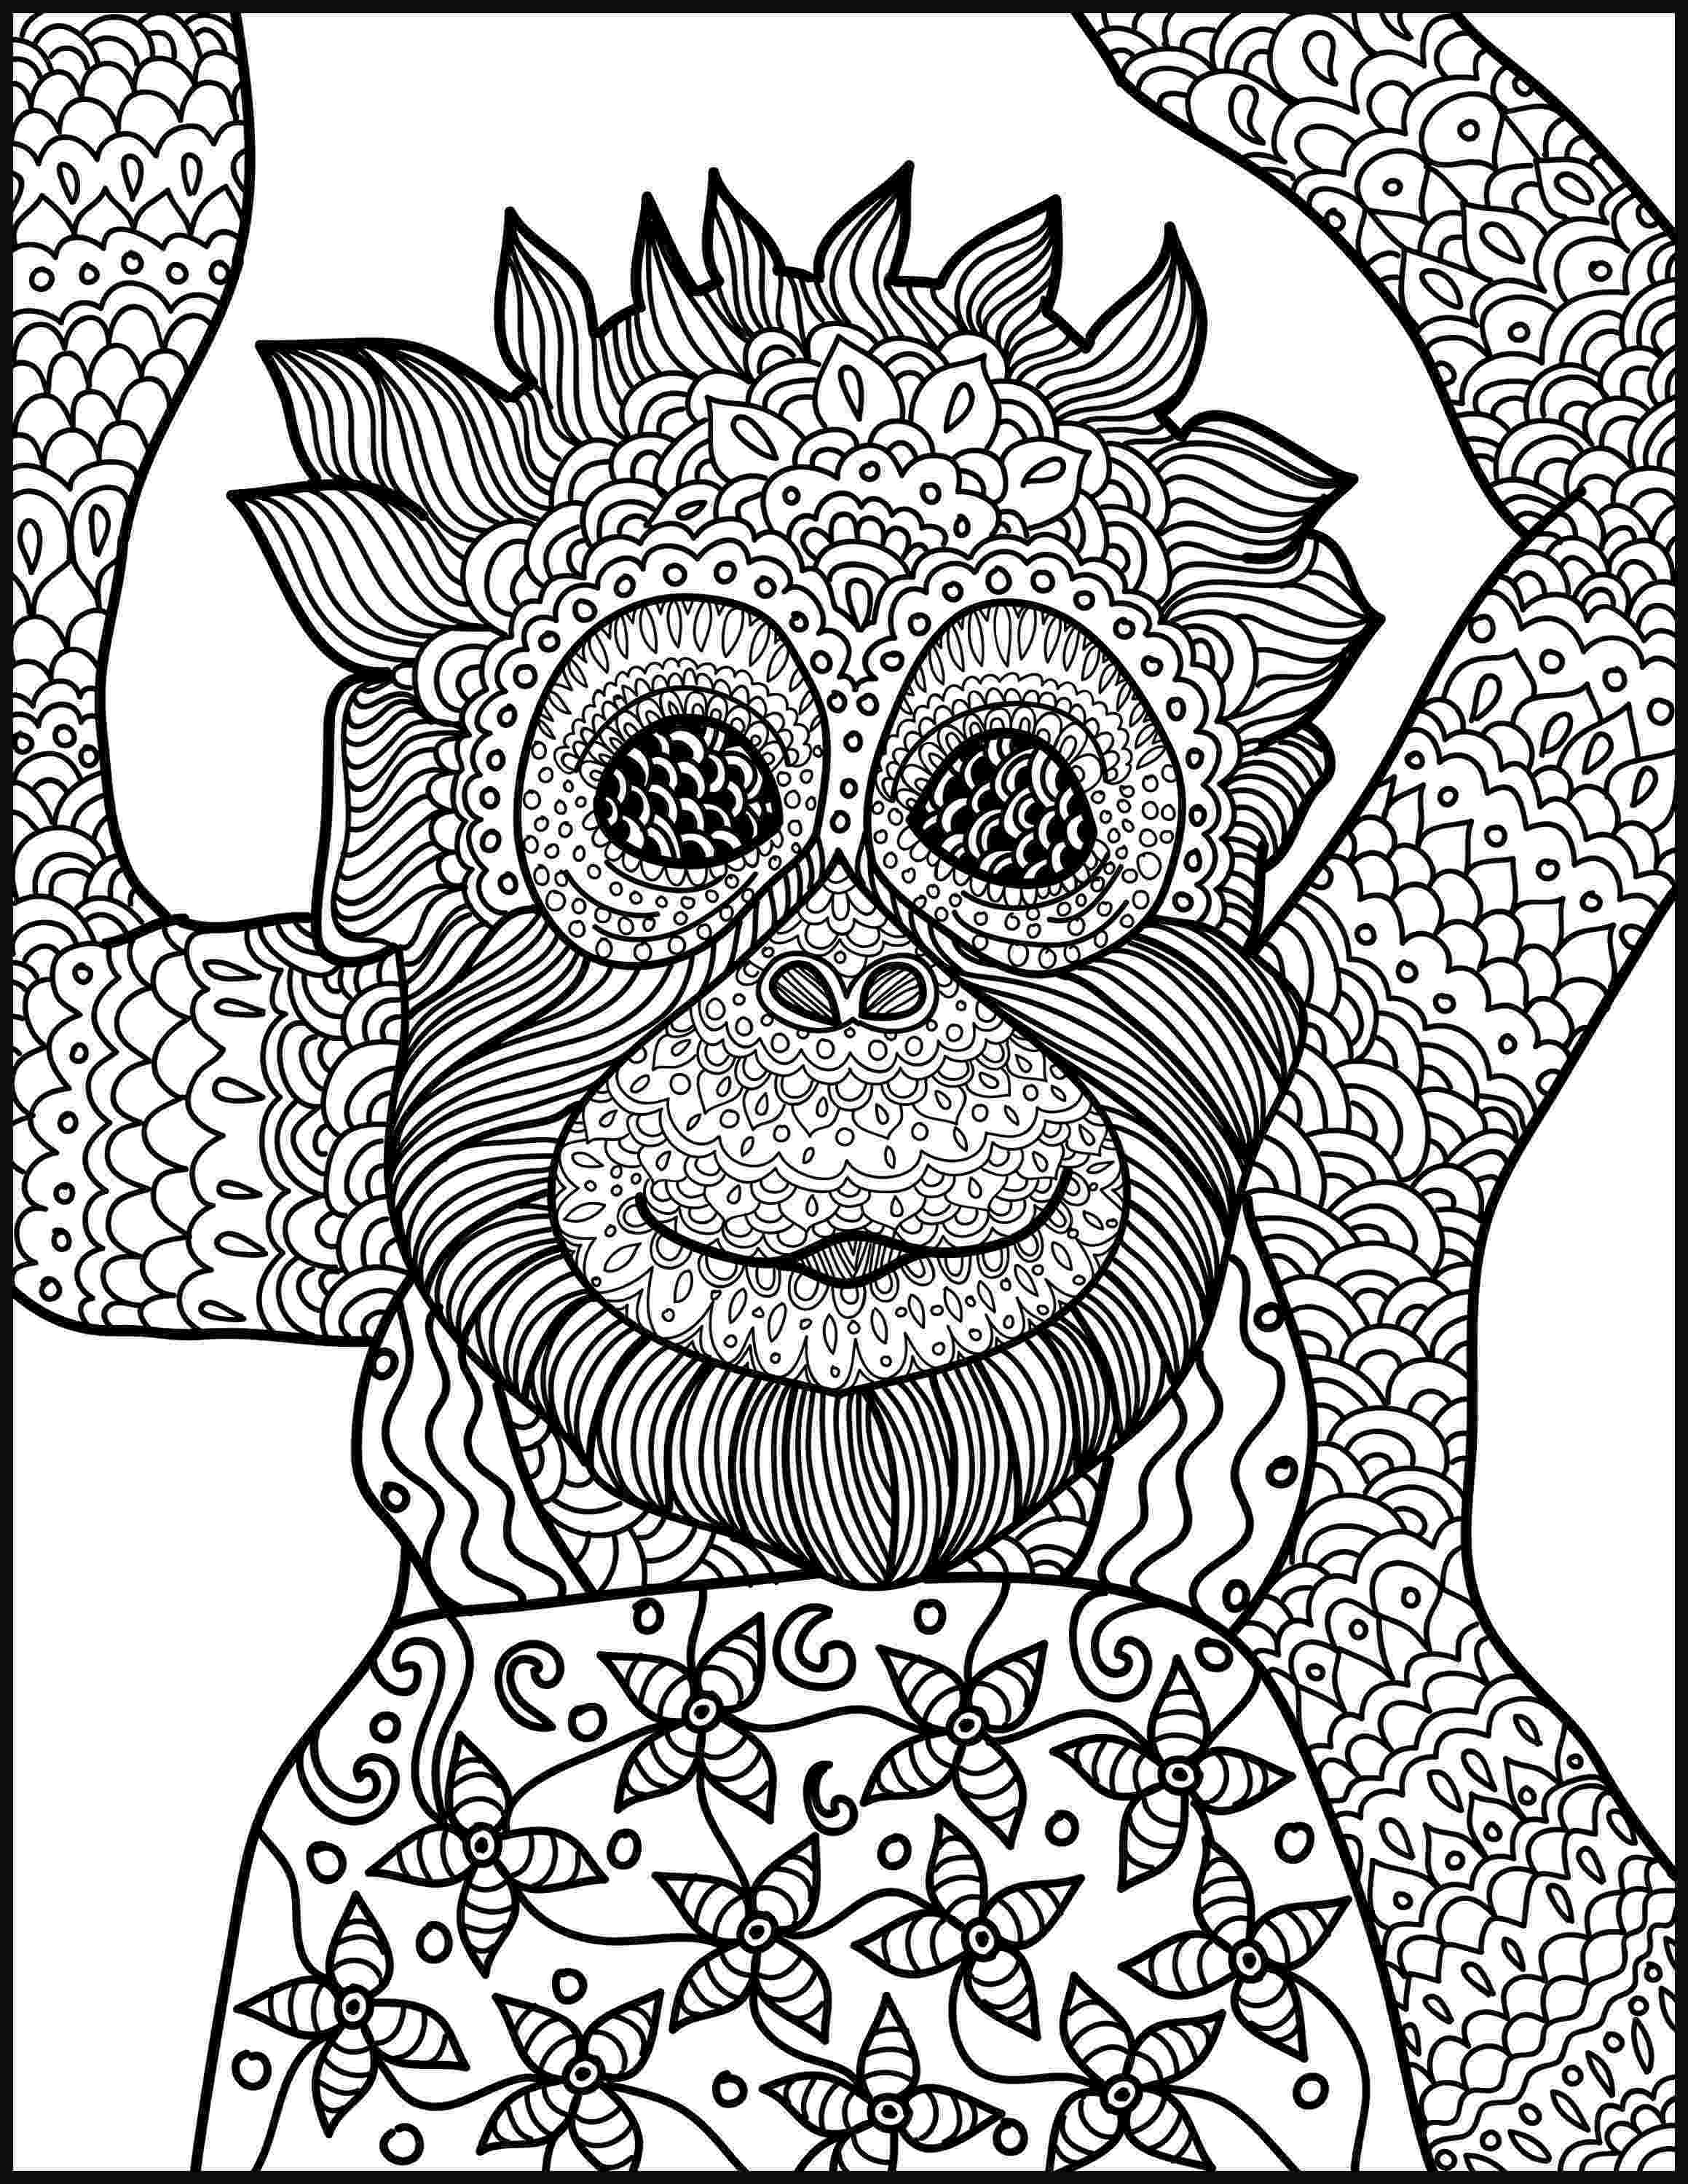 animal coloring book for adults animal coloring page monkey printable adult coloring page adults coloring book animal for